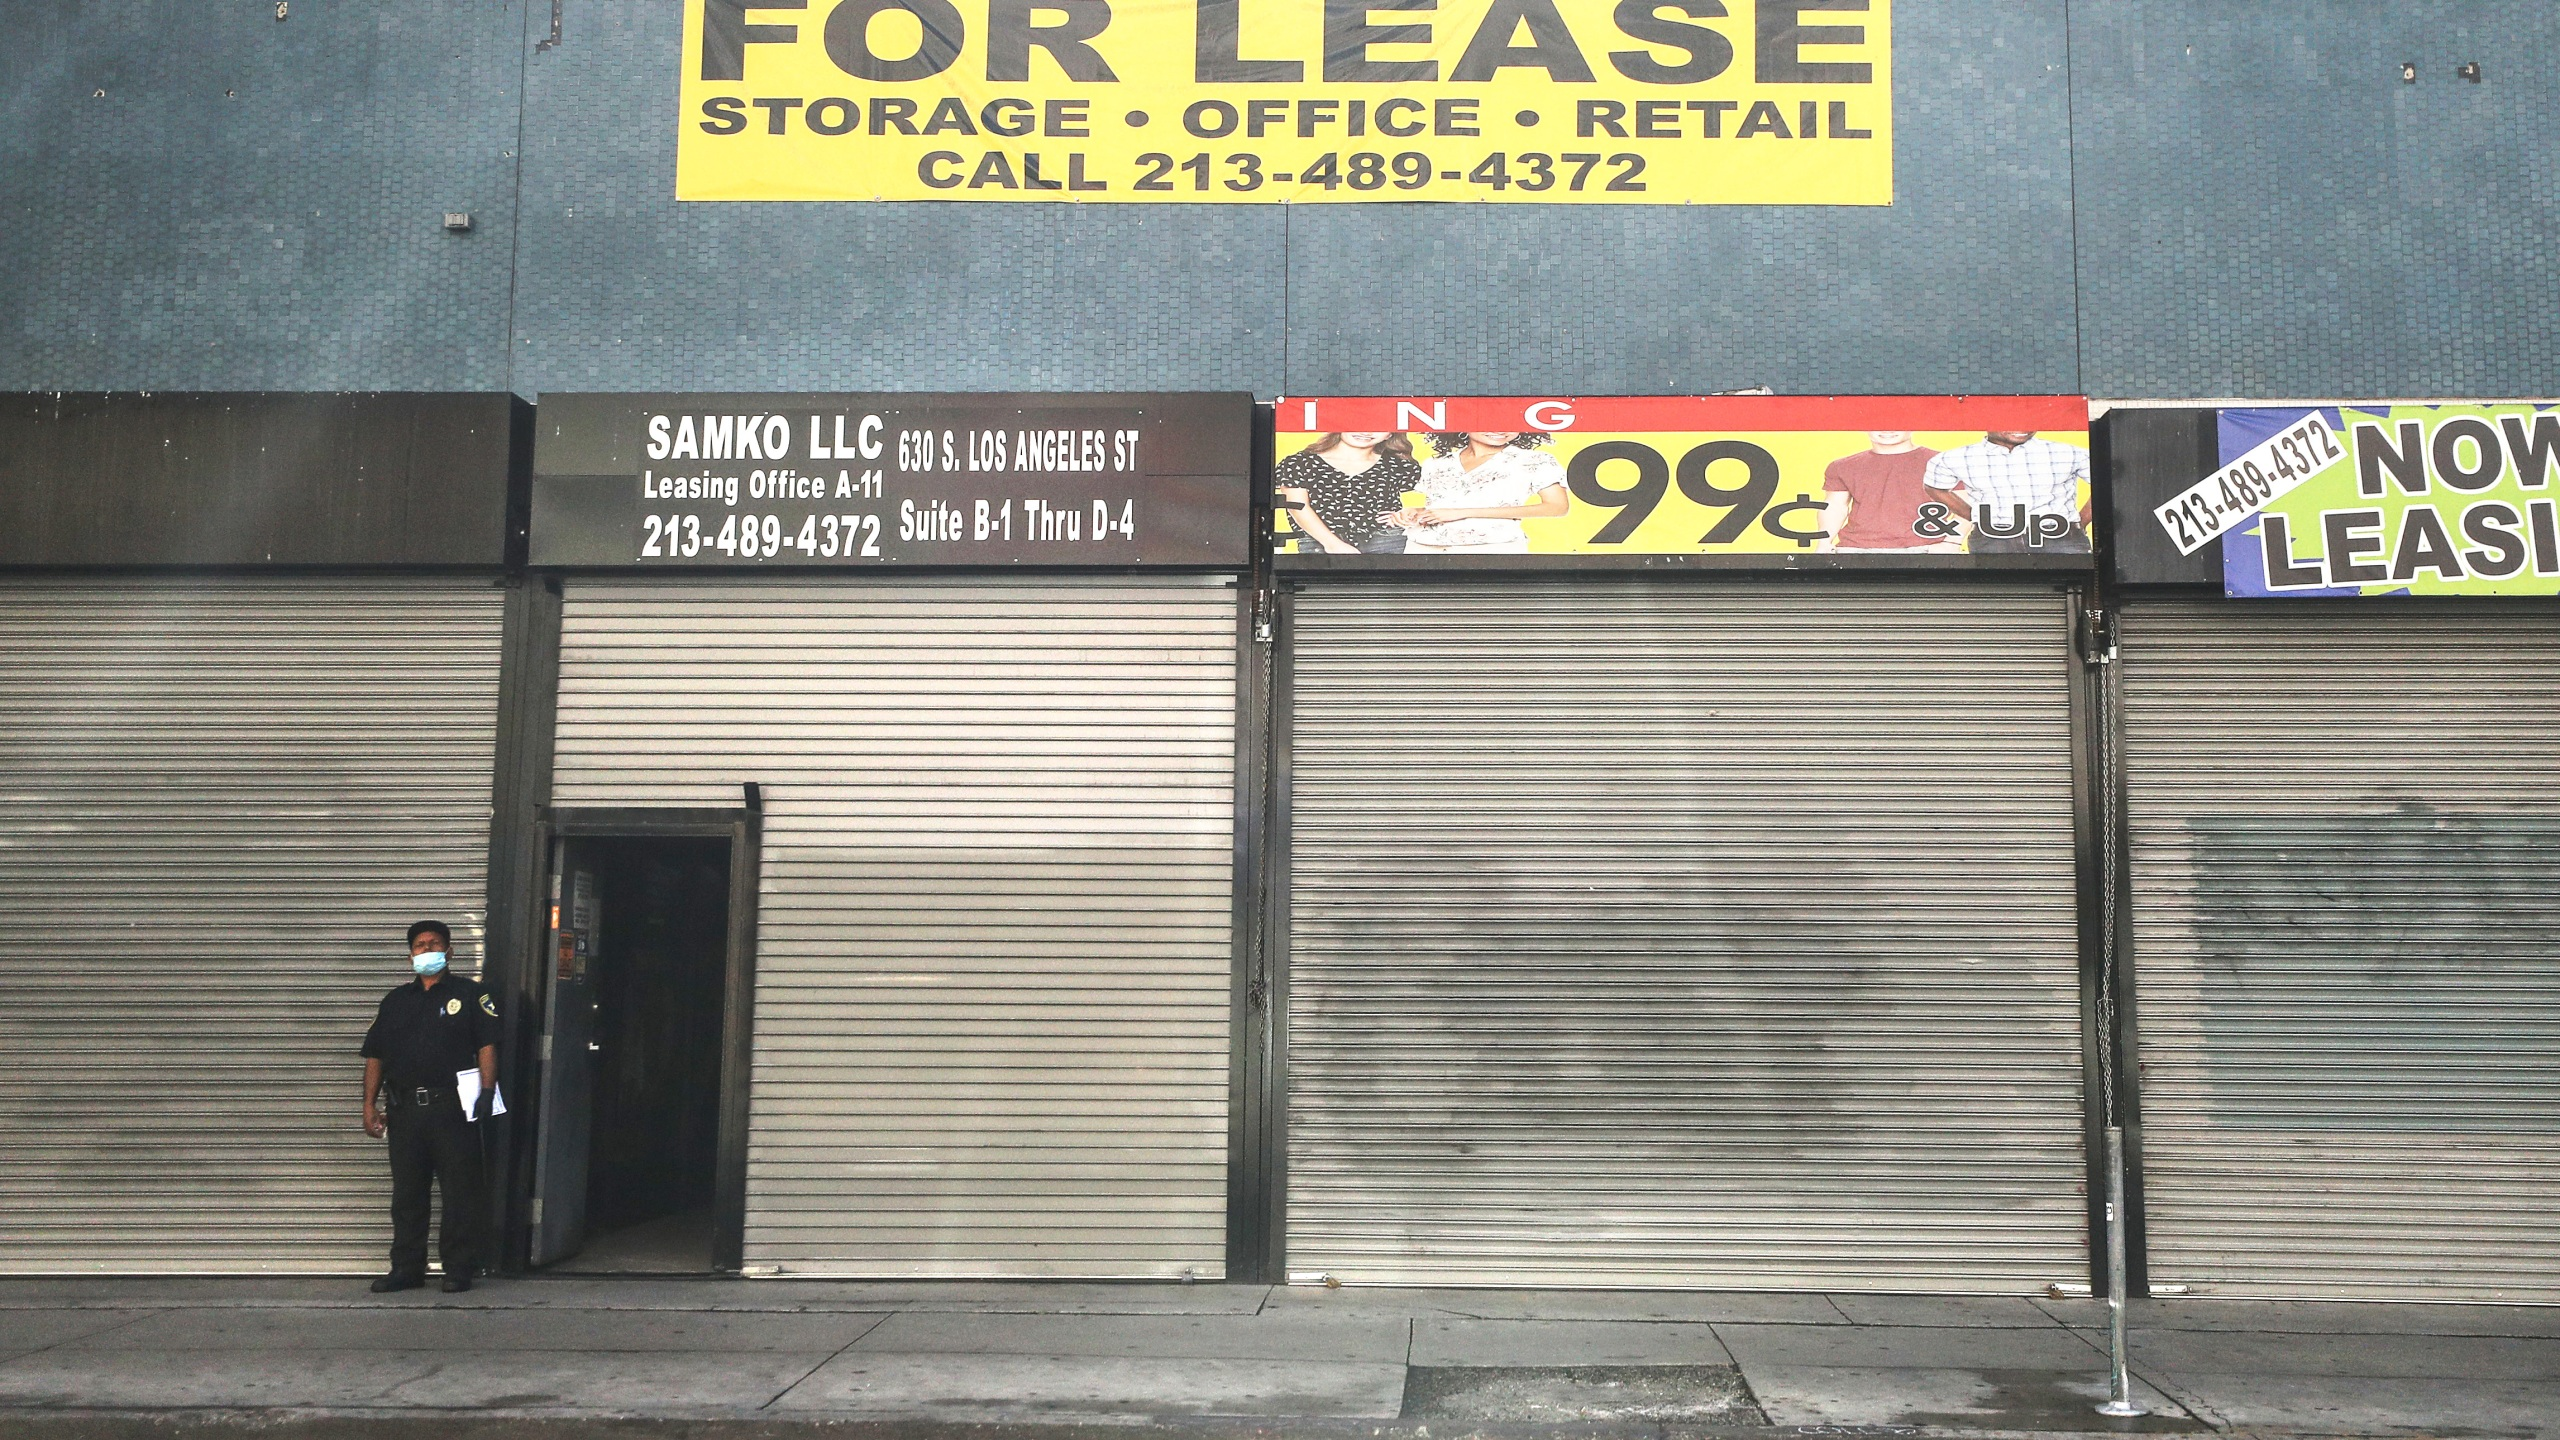 A security guard wears a face mask while standing outside shuttered shops and a 'For Lease' sign amid the global coronavirus pandemic on March 30, 2020 in Los Angeles, California. (Mario Tama/Getty Images)